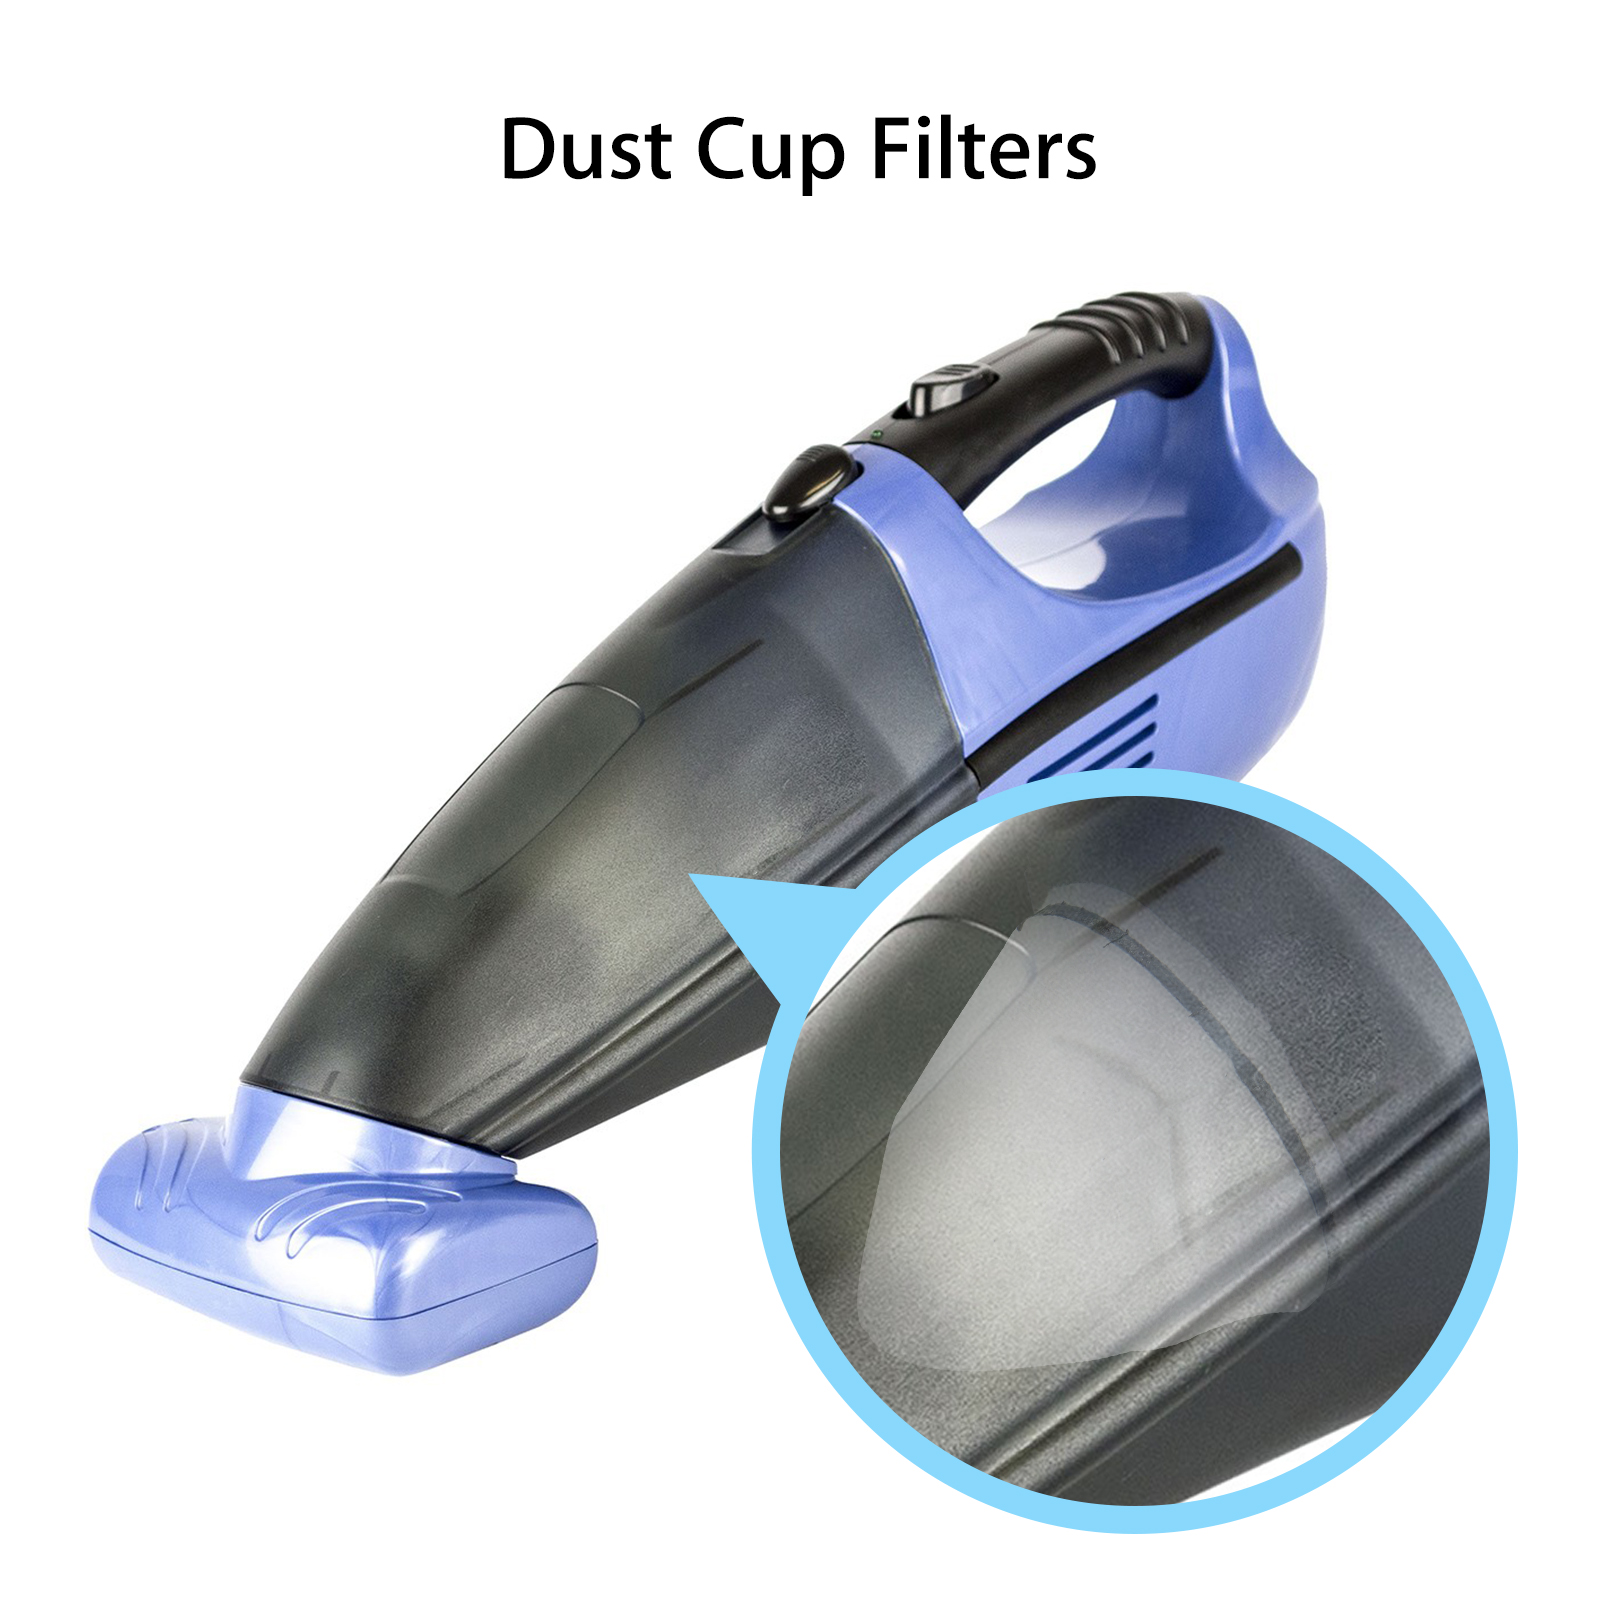 3Pcs Dust Cup Filters For Shark SV75 SV780 Handheld Vacuum Cleaner Parts